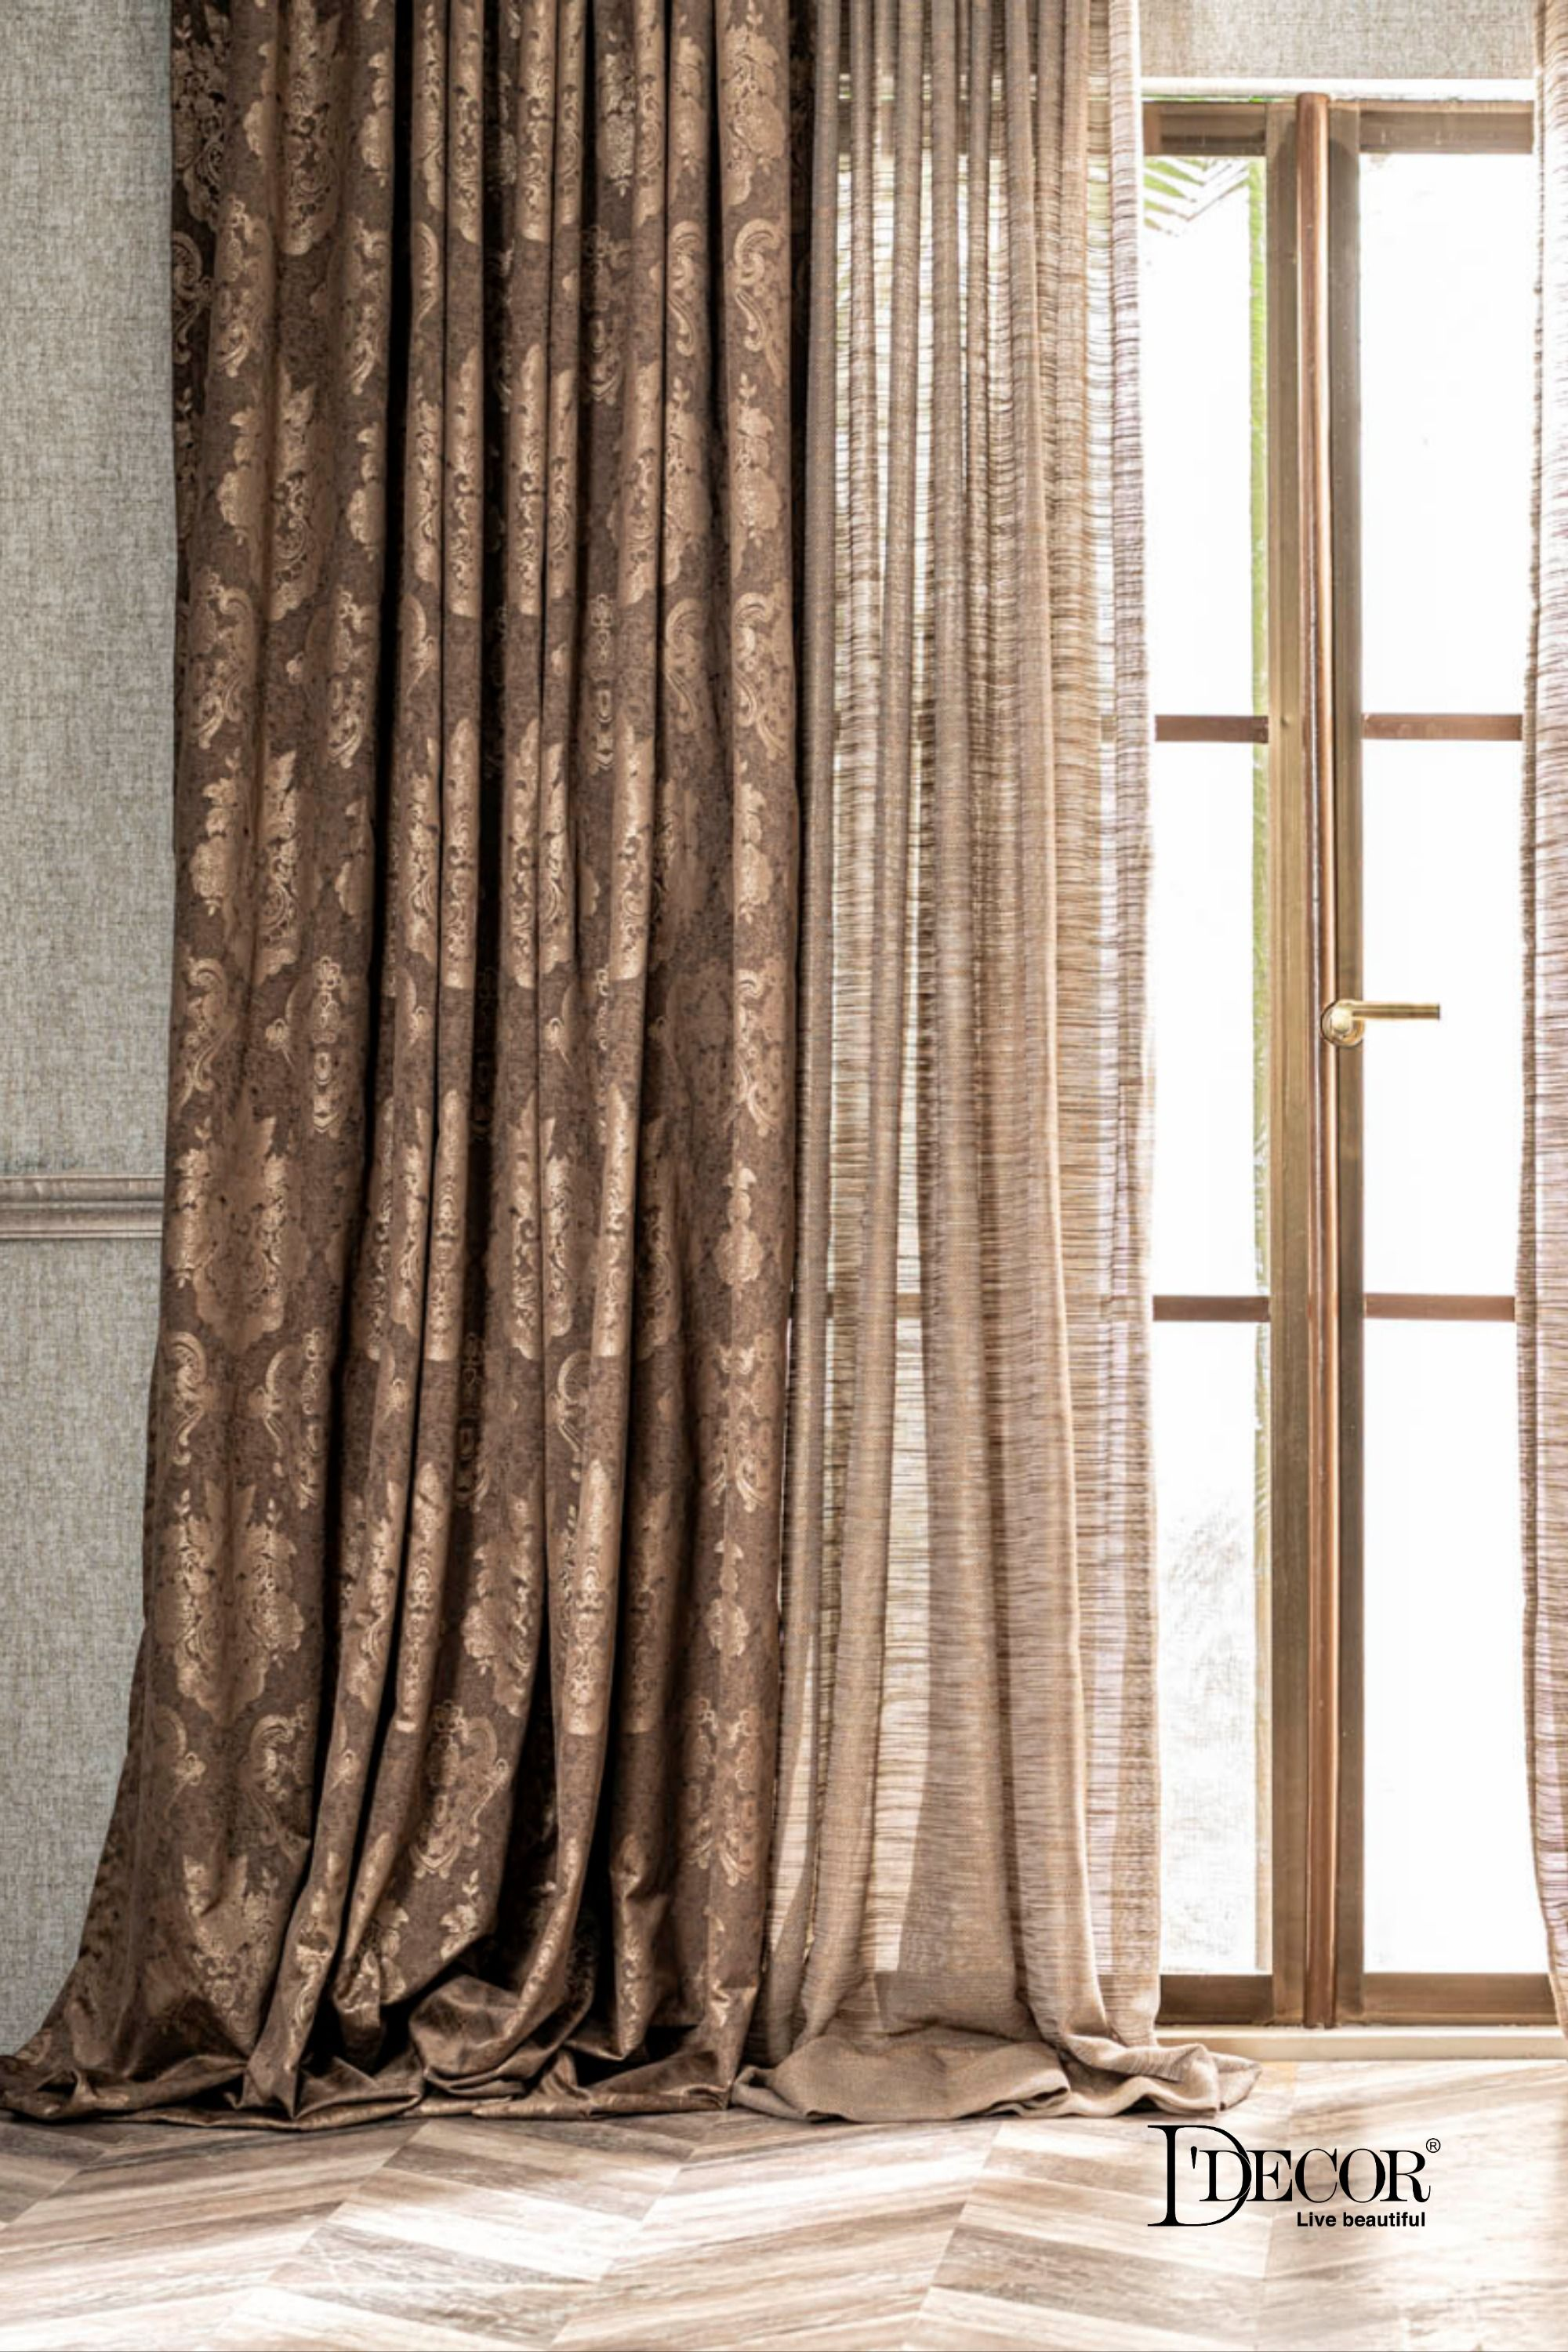 Opulence is a tale of grandeur at its romantic best – a collection of enchanting curtain fabrics detailed with finesse in texture and color. A delicate floral vine intricately woven on a printed backdrop, comes alive in Evince.  #DDecor #DDecorDiaries #Curtains #HomeDecor #StyleExpert #HomeStyling #Breiges #curtains #curtainsonline #windowcurtains #readymadecurtains #CurtainsLivingRoom #CurtainsBedroom #interiors